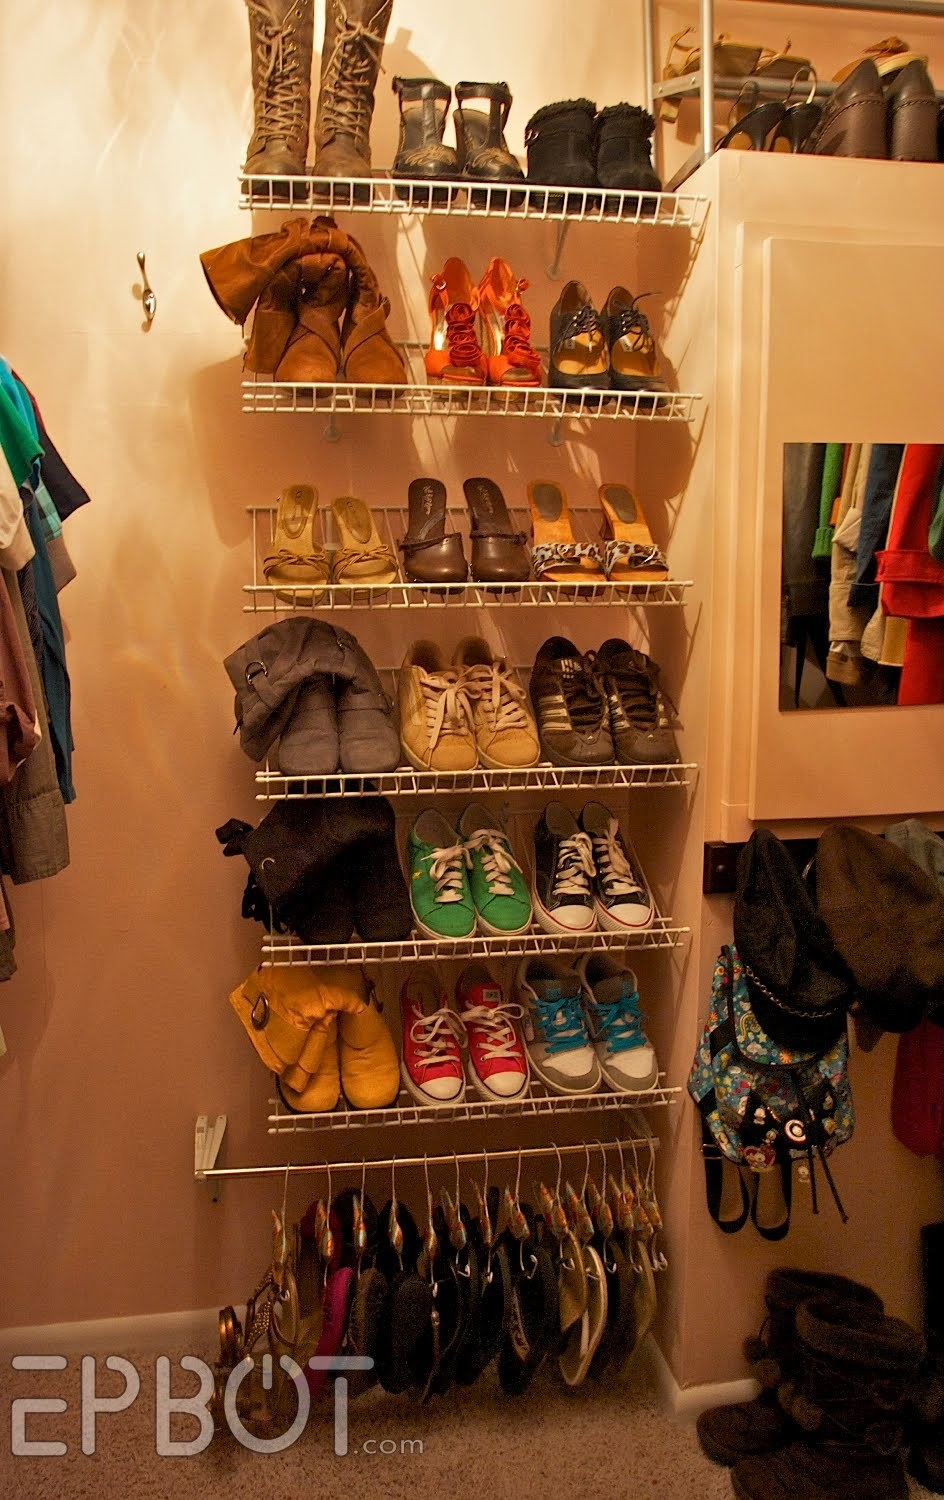 A blogger's closet; five upside-down wire shelves, hung at an angle, fit and display three pairs of shoes each